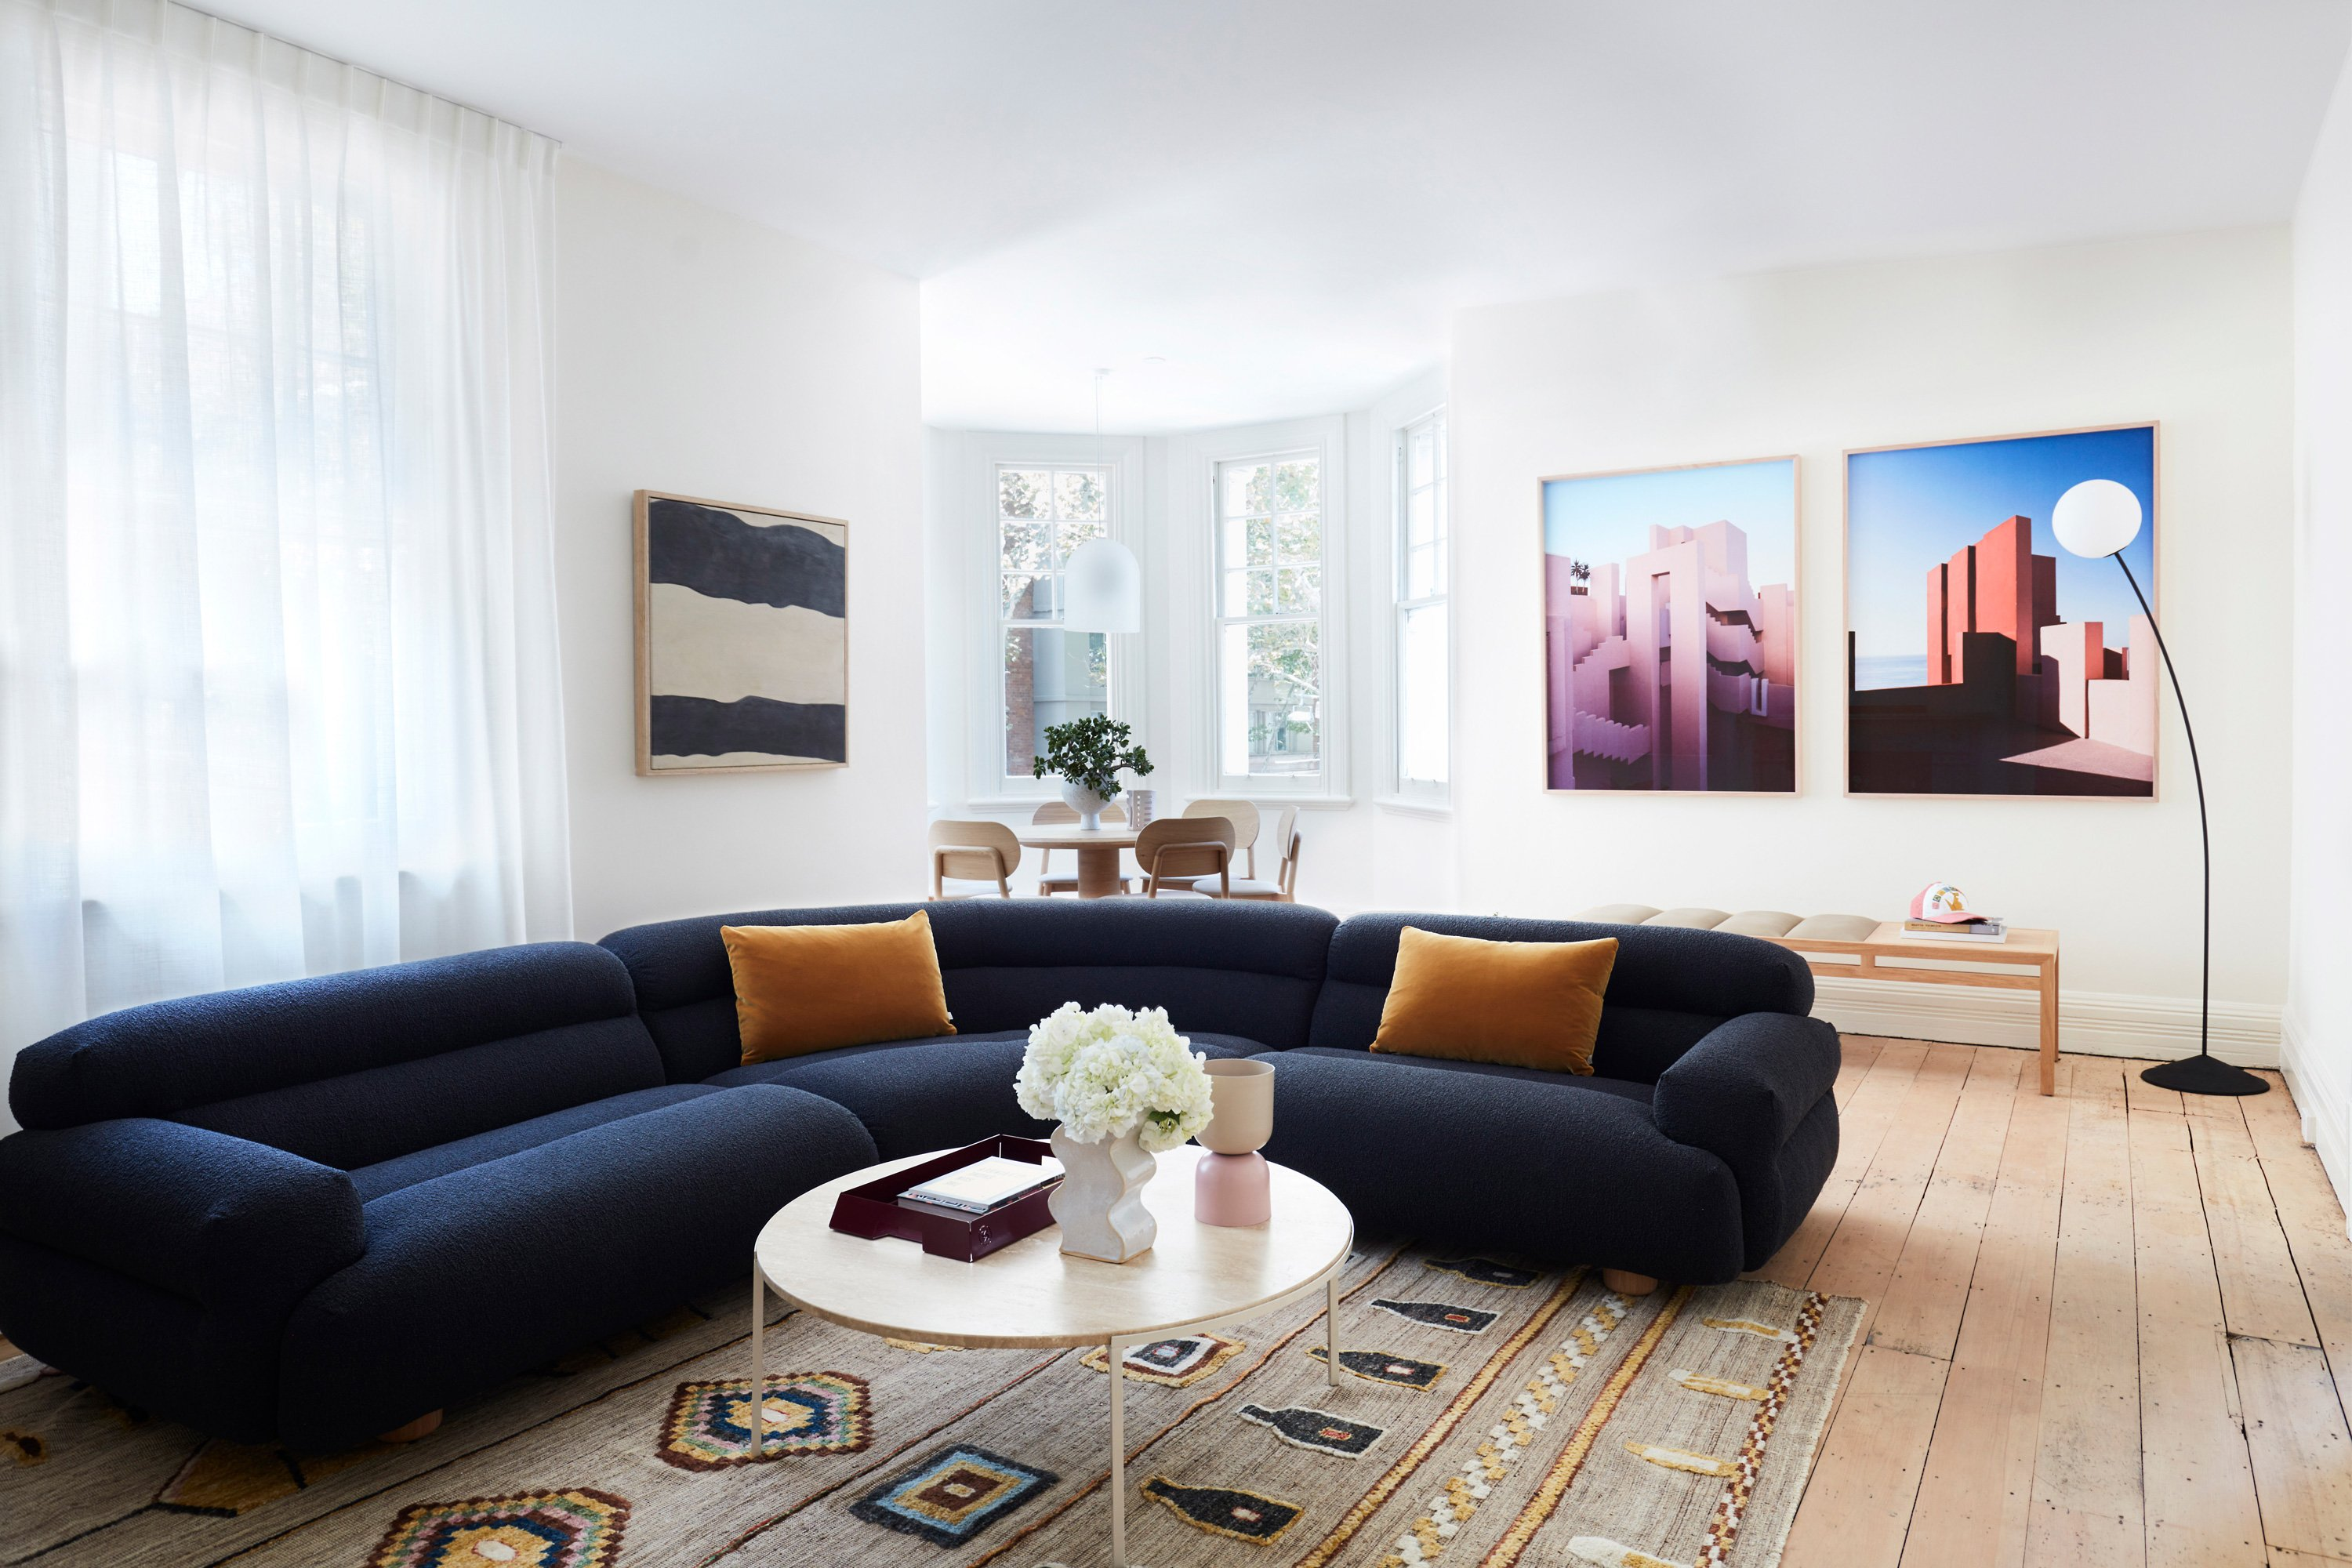 Valley Modular, Elk Mustard Cushions, Alice Coffee Table, Wave Vase in Oyster, Dari Camel Rug, McKenzie Upholstered Dining Chairs, Arte Dining Table, Dawn Pendant, Monumen by Kane Alexander, Bofill by Kane Alexander, Billie Bench + Boyd Floor Lamp